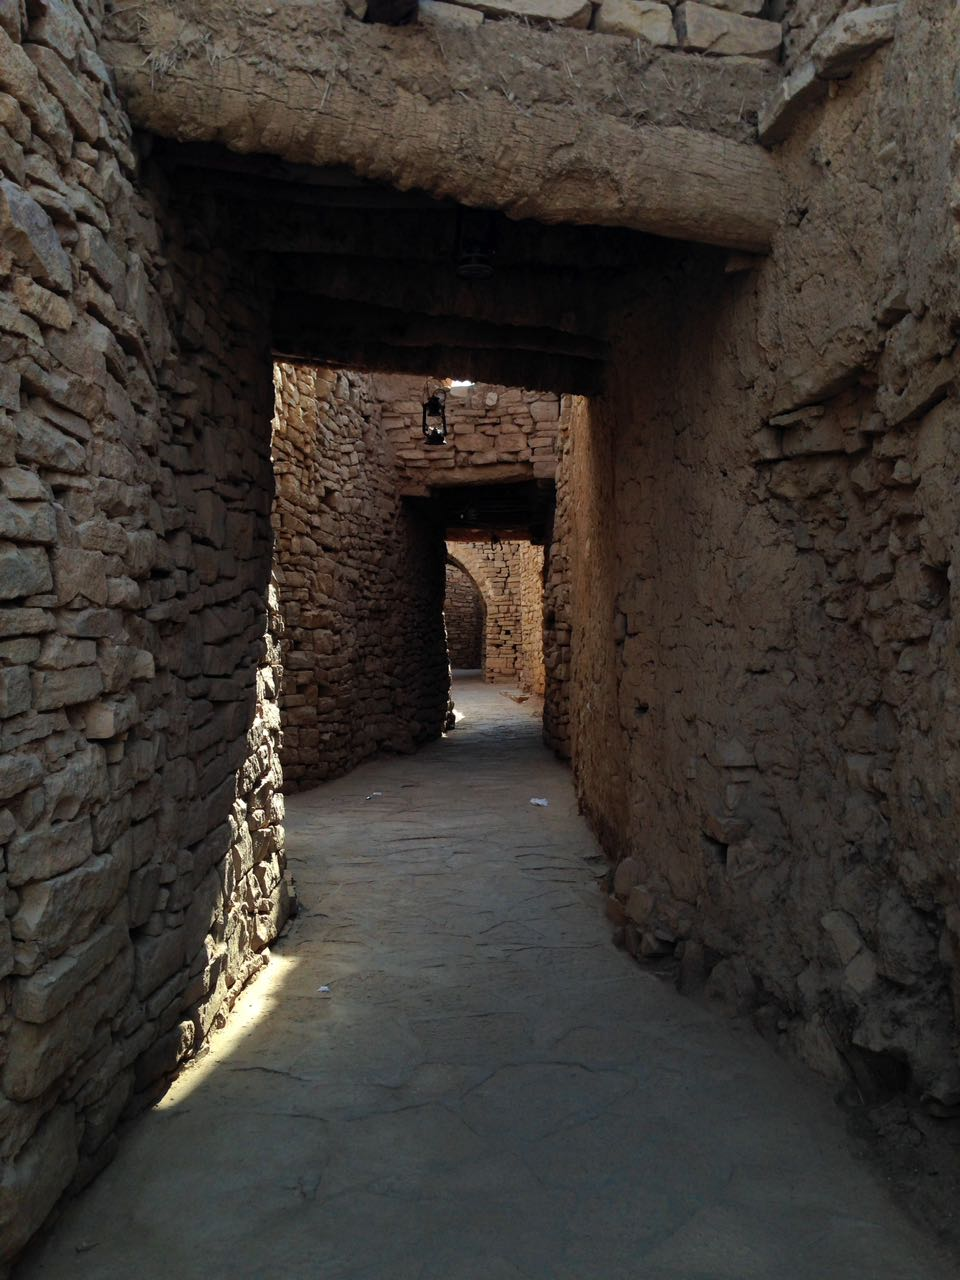 The ancient town inside Al Dar'i Quarter, Saudi Arabia